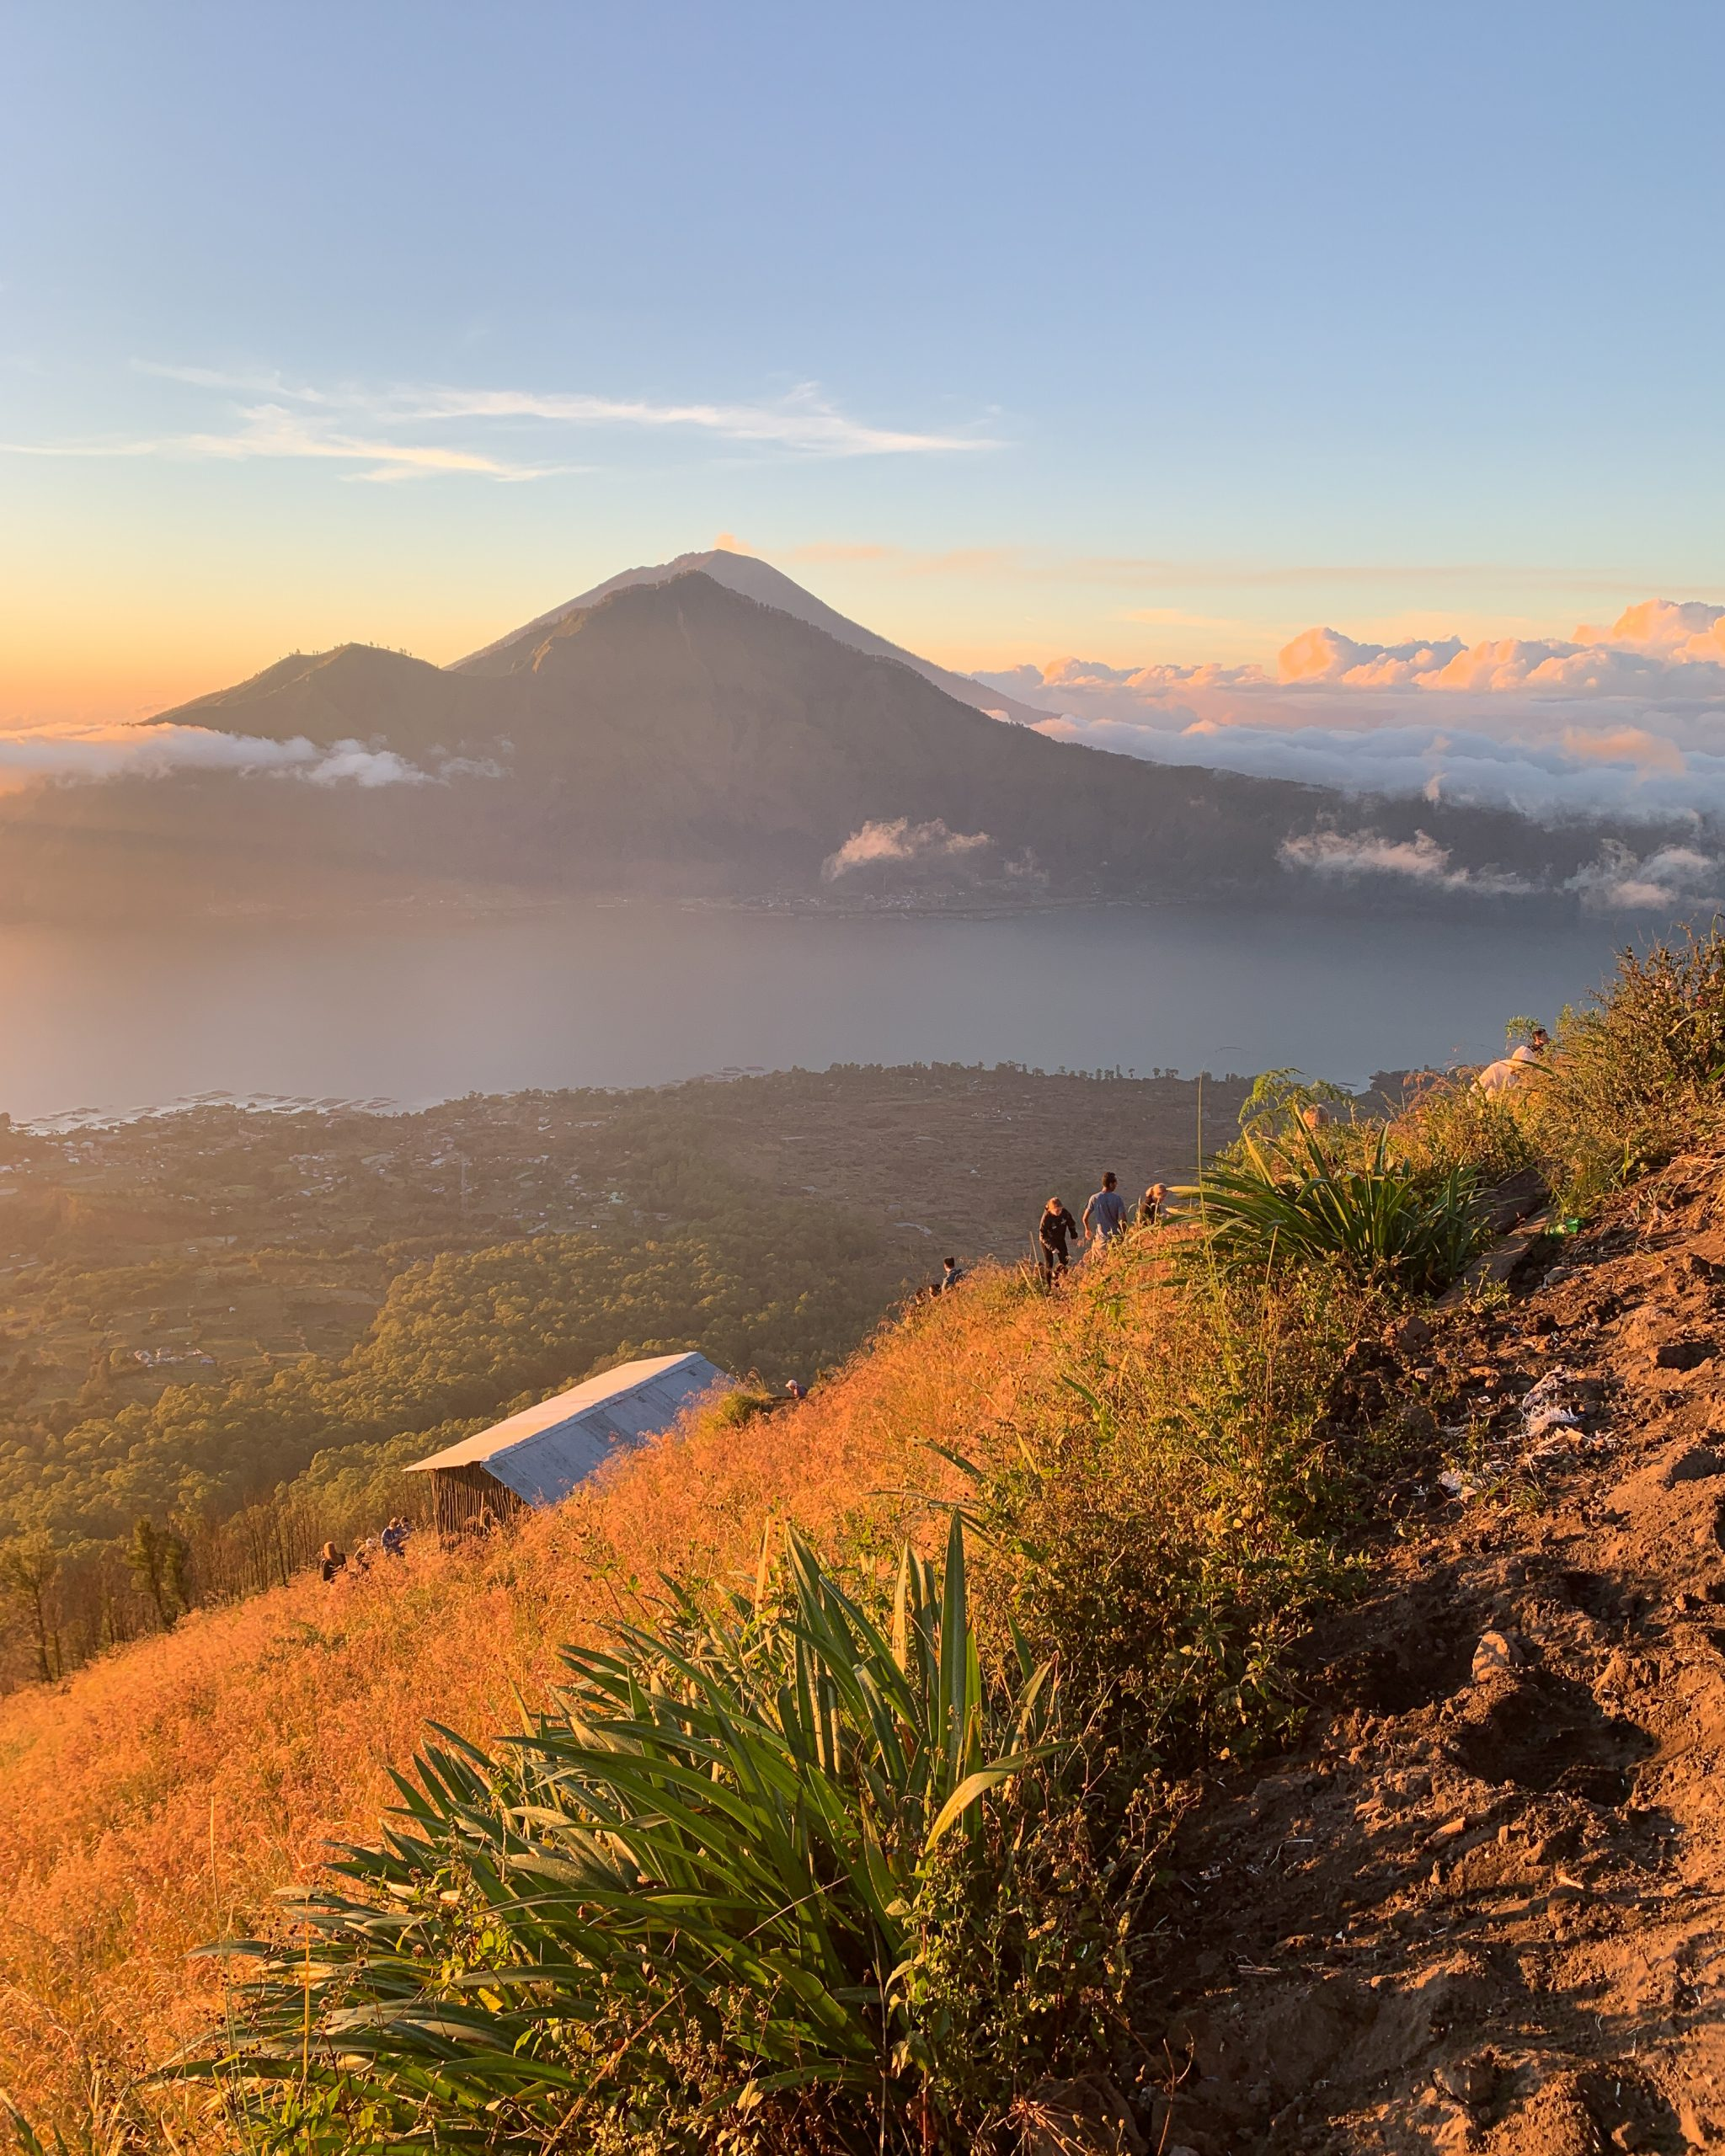 What you need to know about the Mt. Batur sunrise hike in Bali #bali